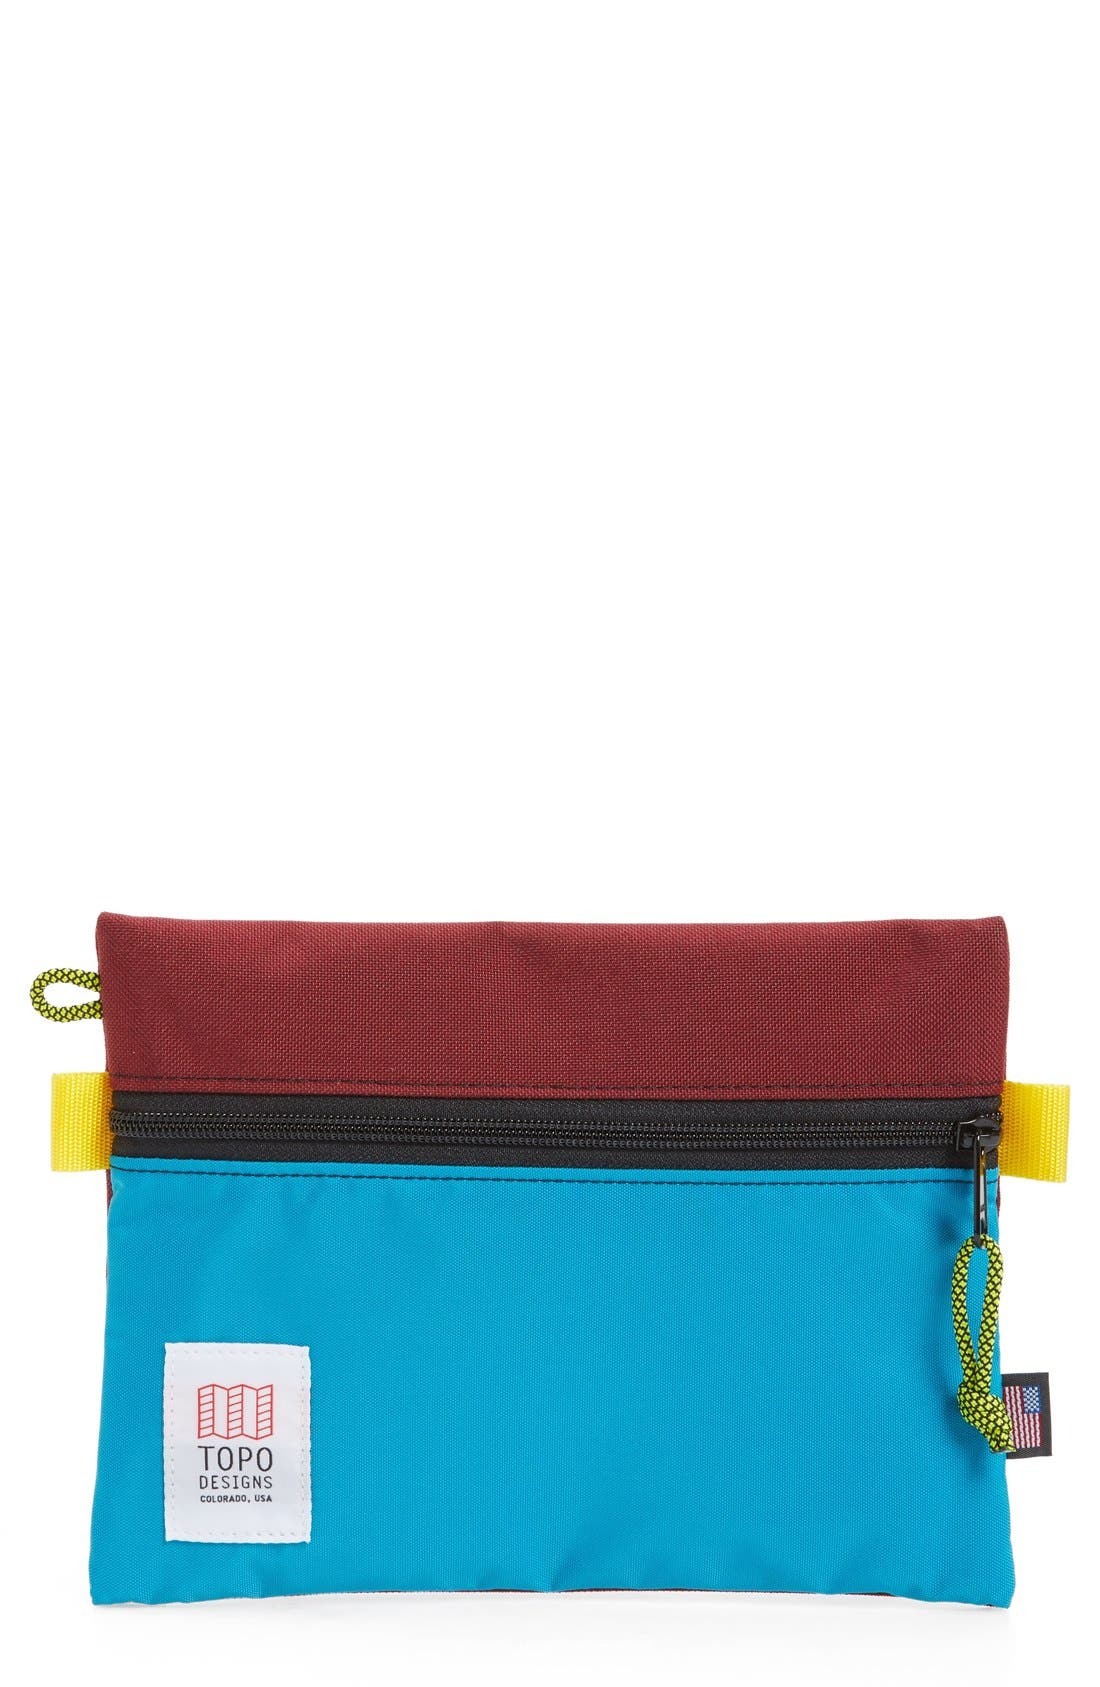 Topo Designs Accessory Bag,                         Main,                         color, Burgundy/ Turquoise